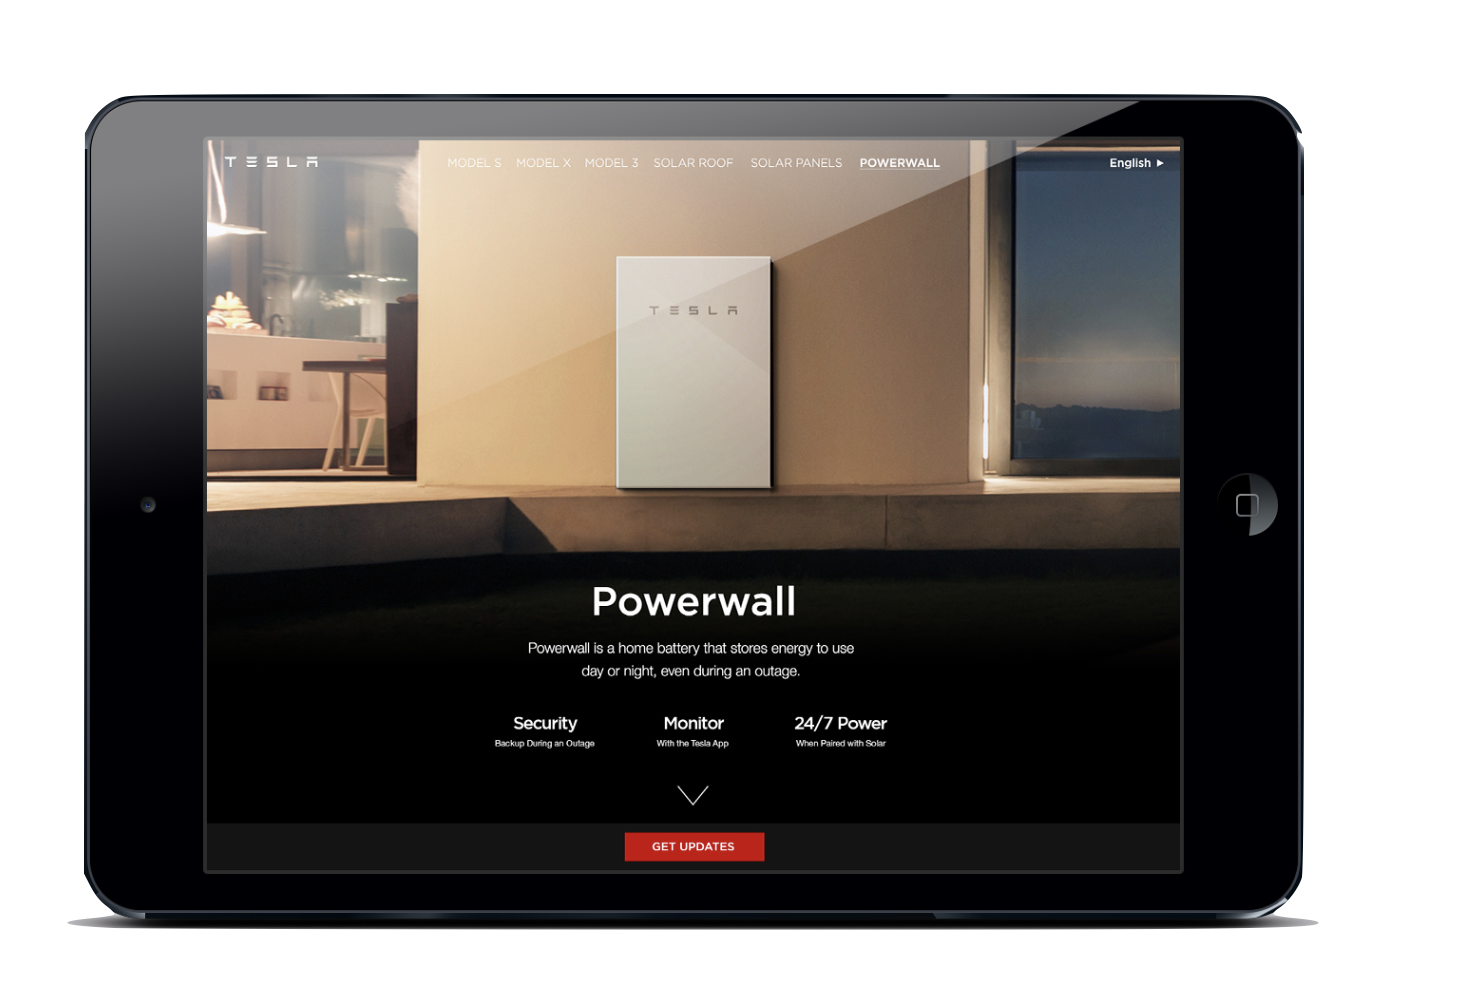 powerwall, at the LA auto show. - [copy: full kiosk experience for powerwall, solar roof, model s, model x, model 3]